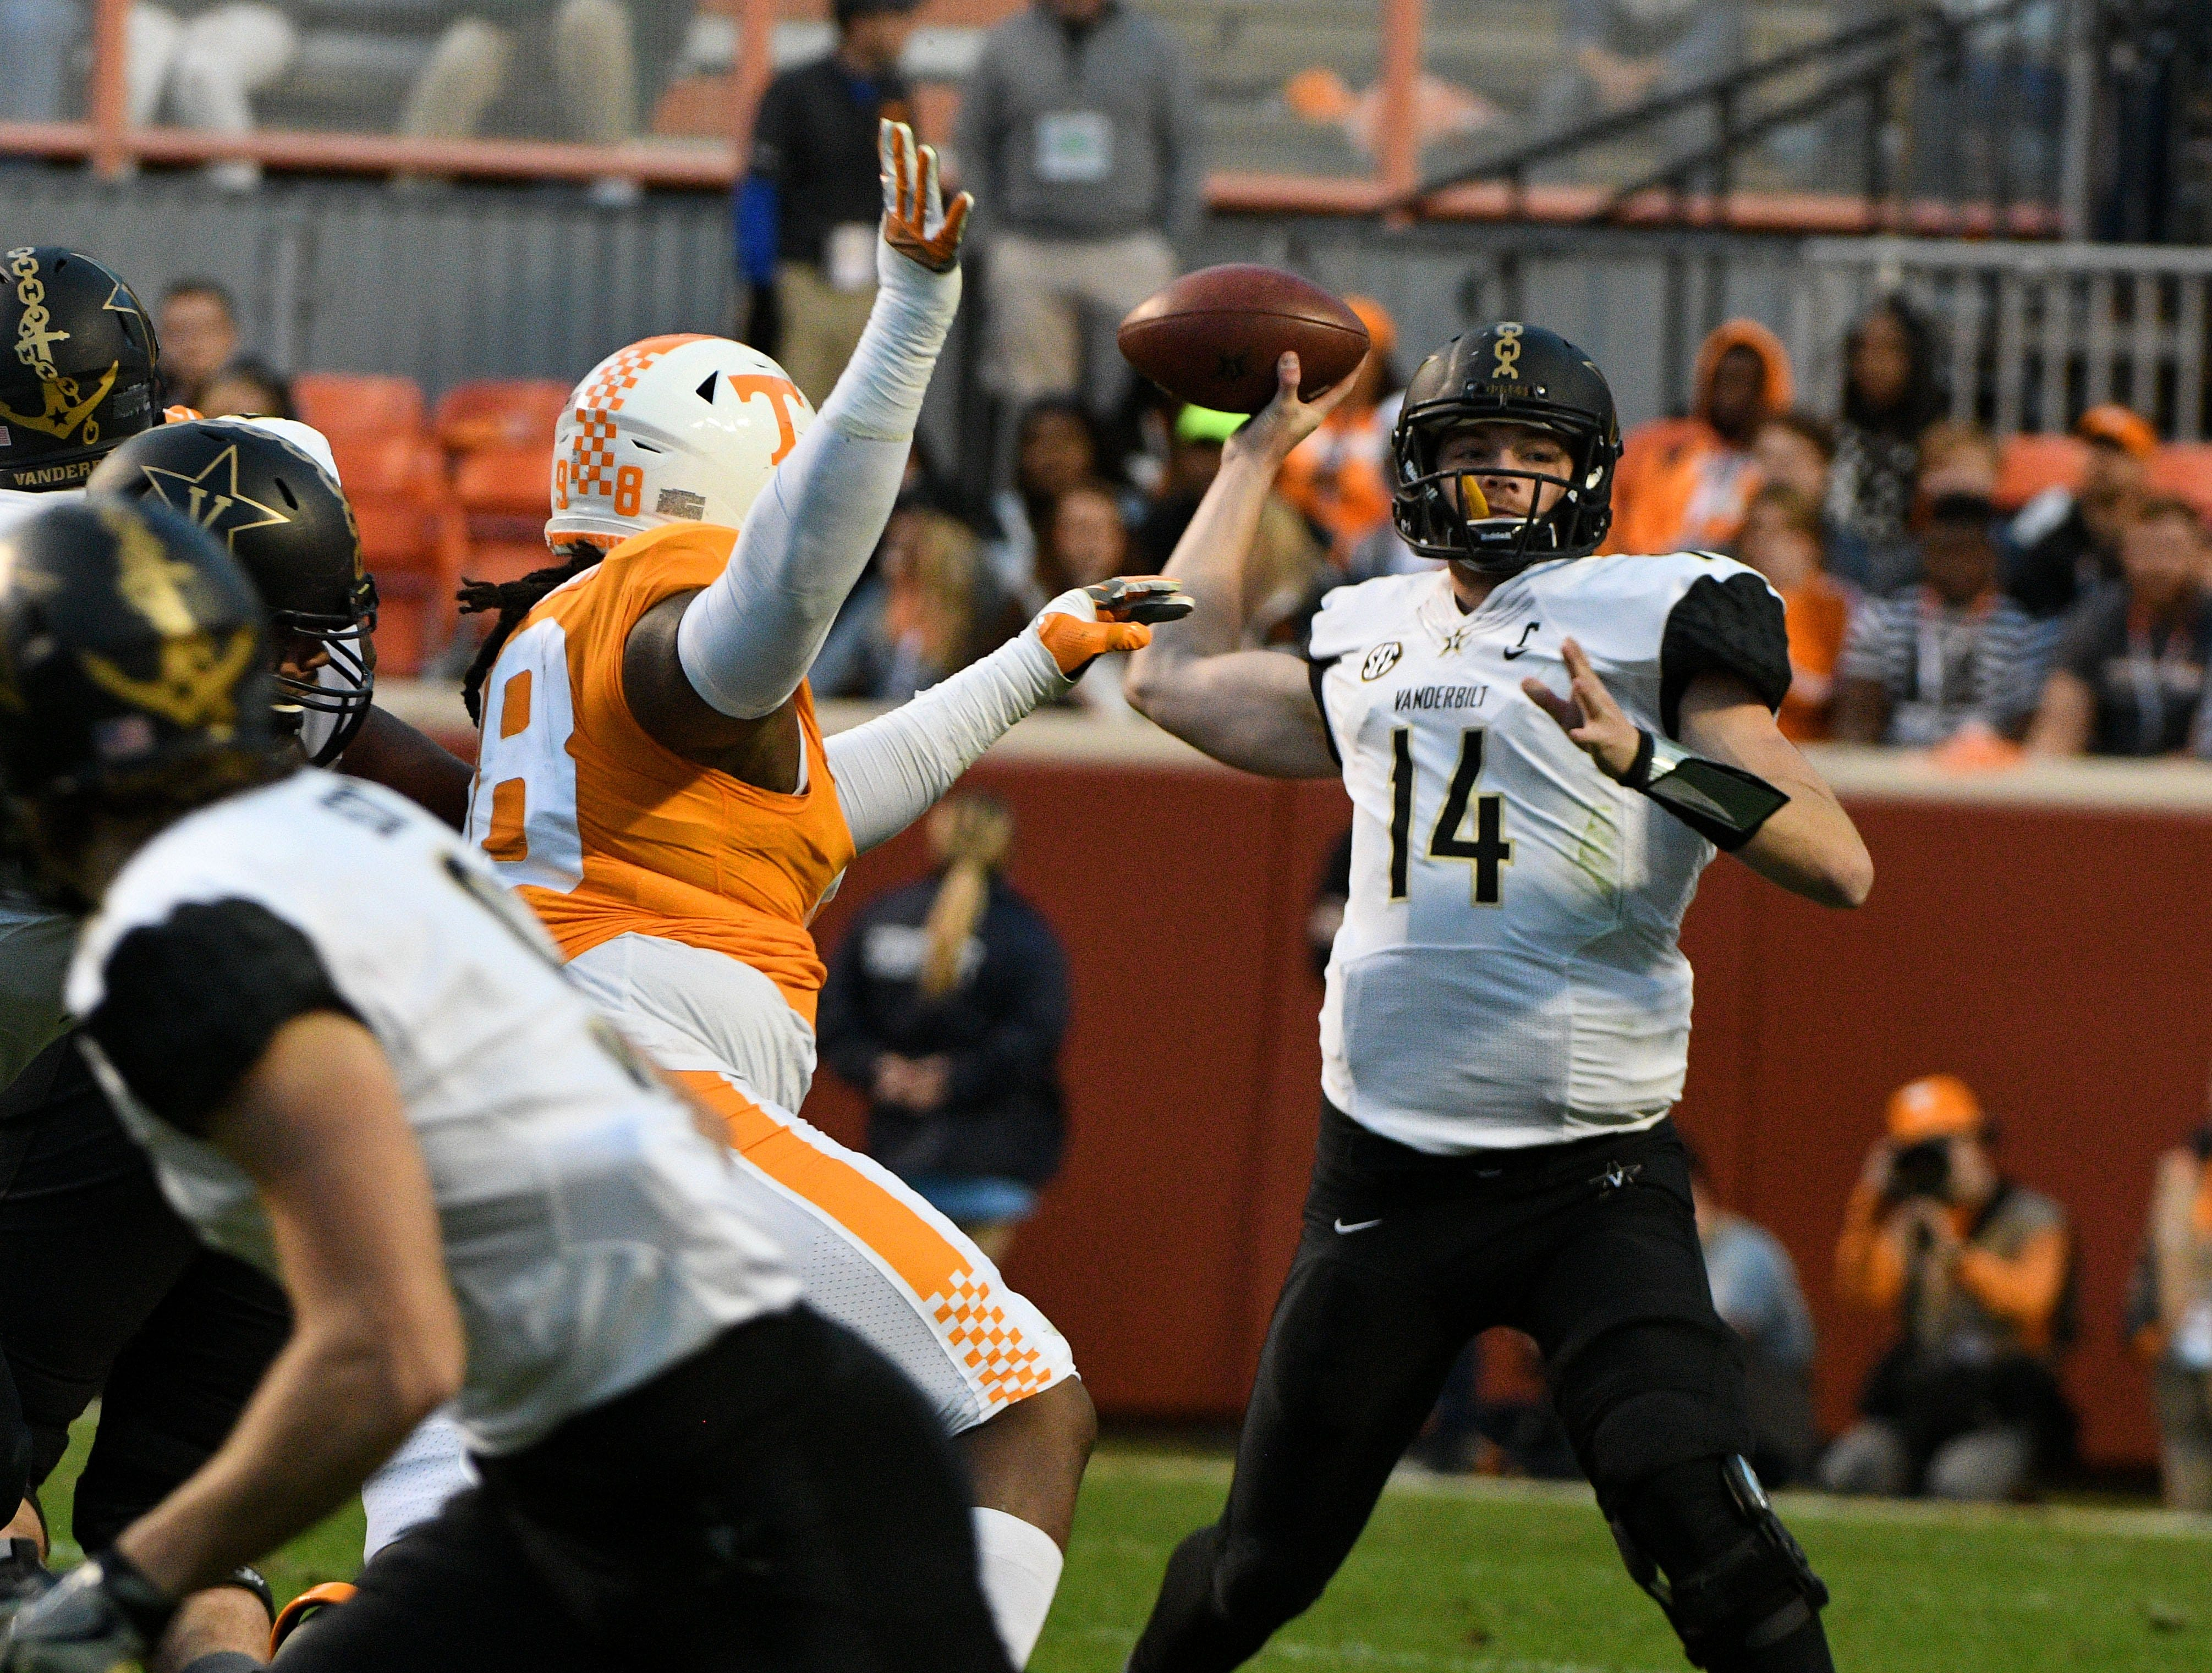 UT Vols vs Vanderbilt football rivalry may not have a name but it does have significance